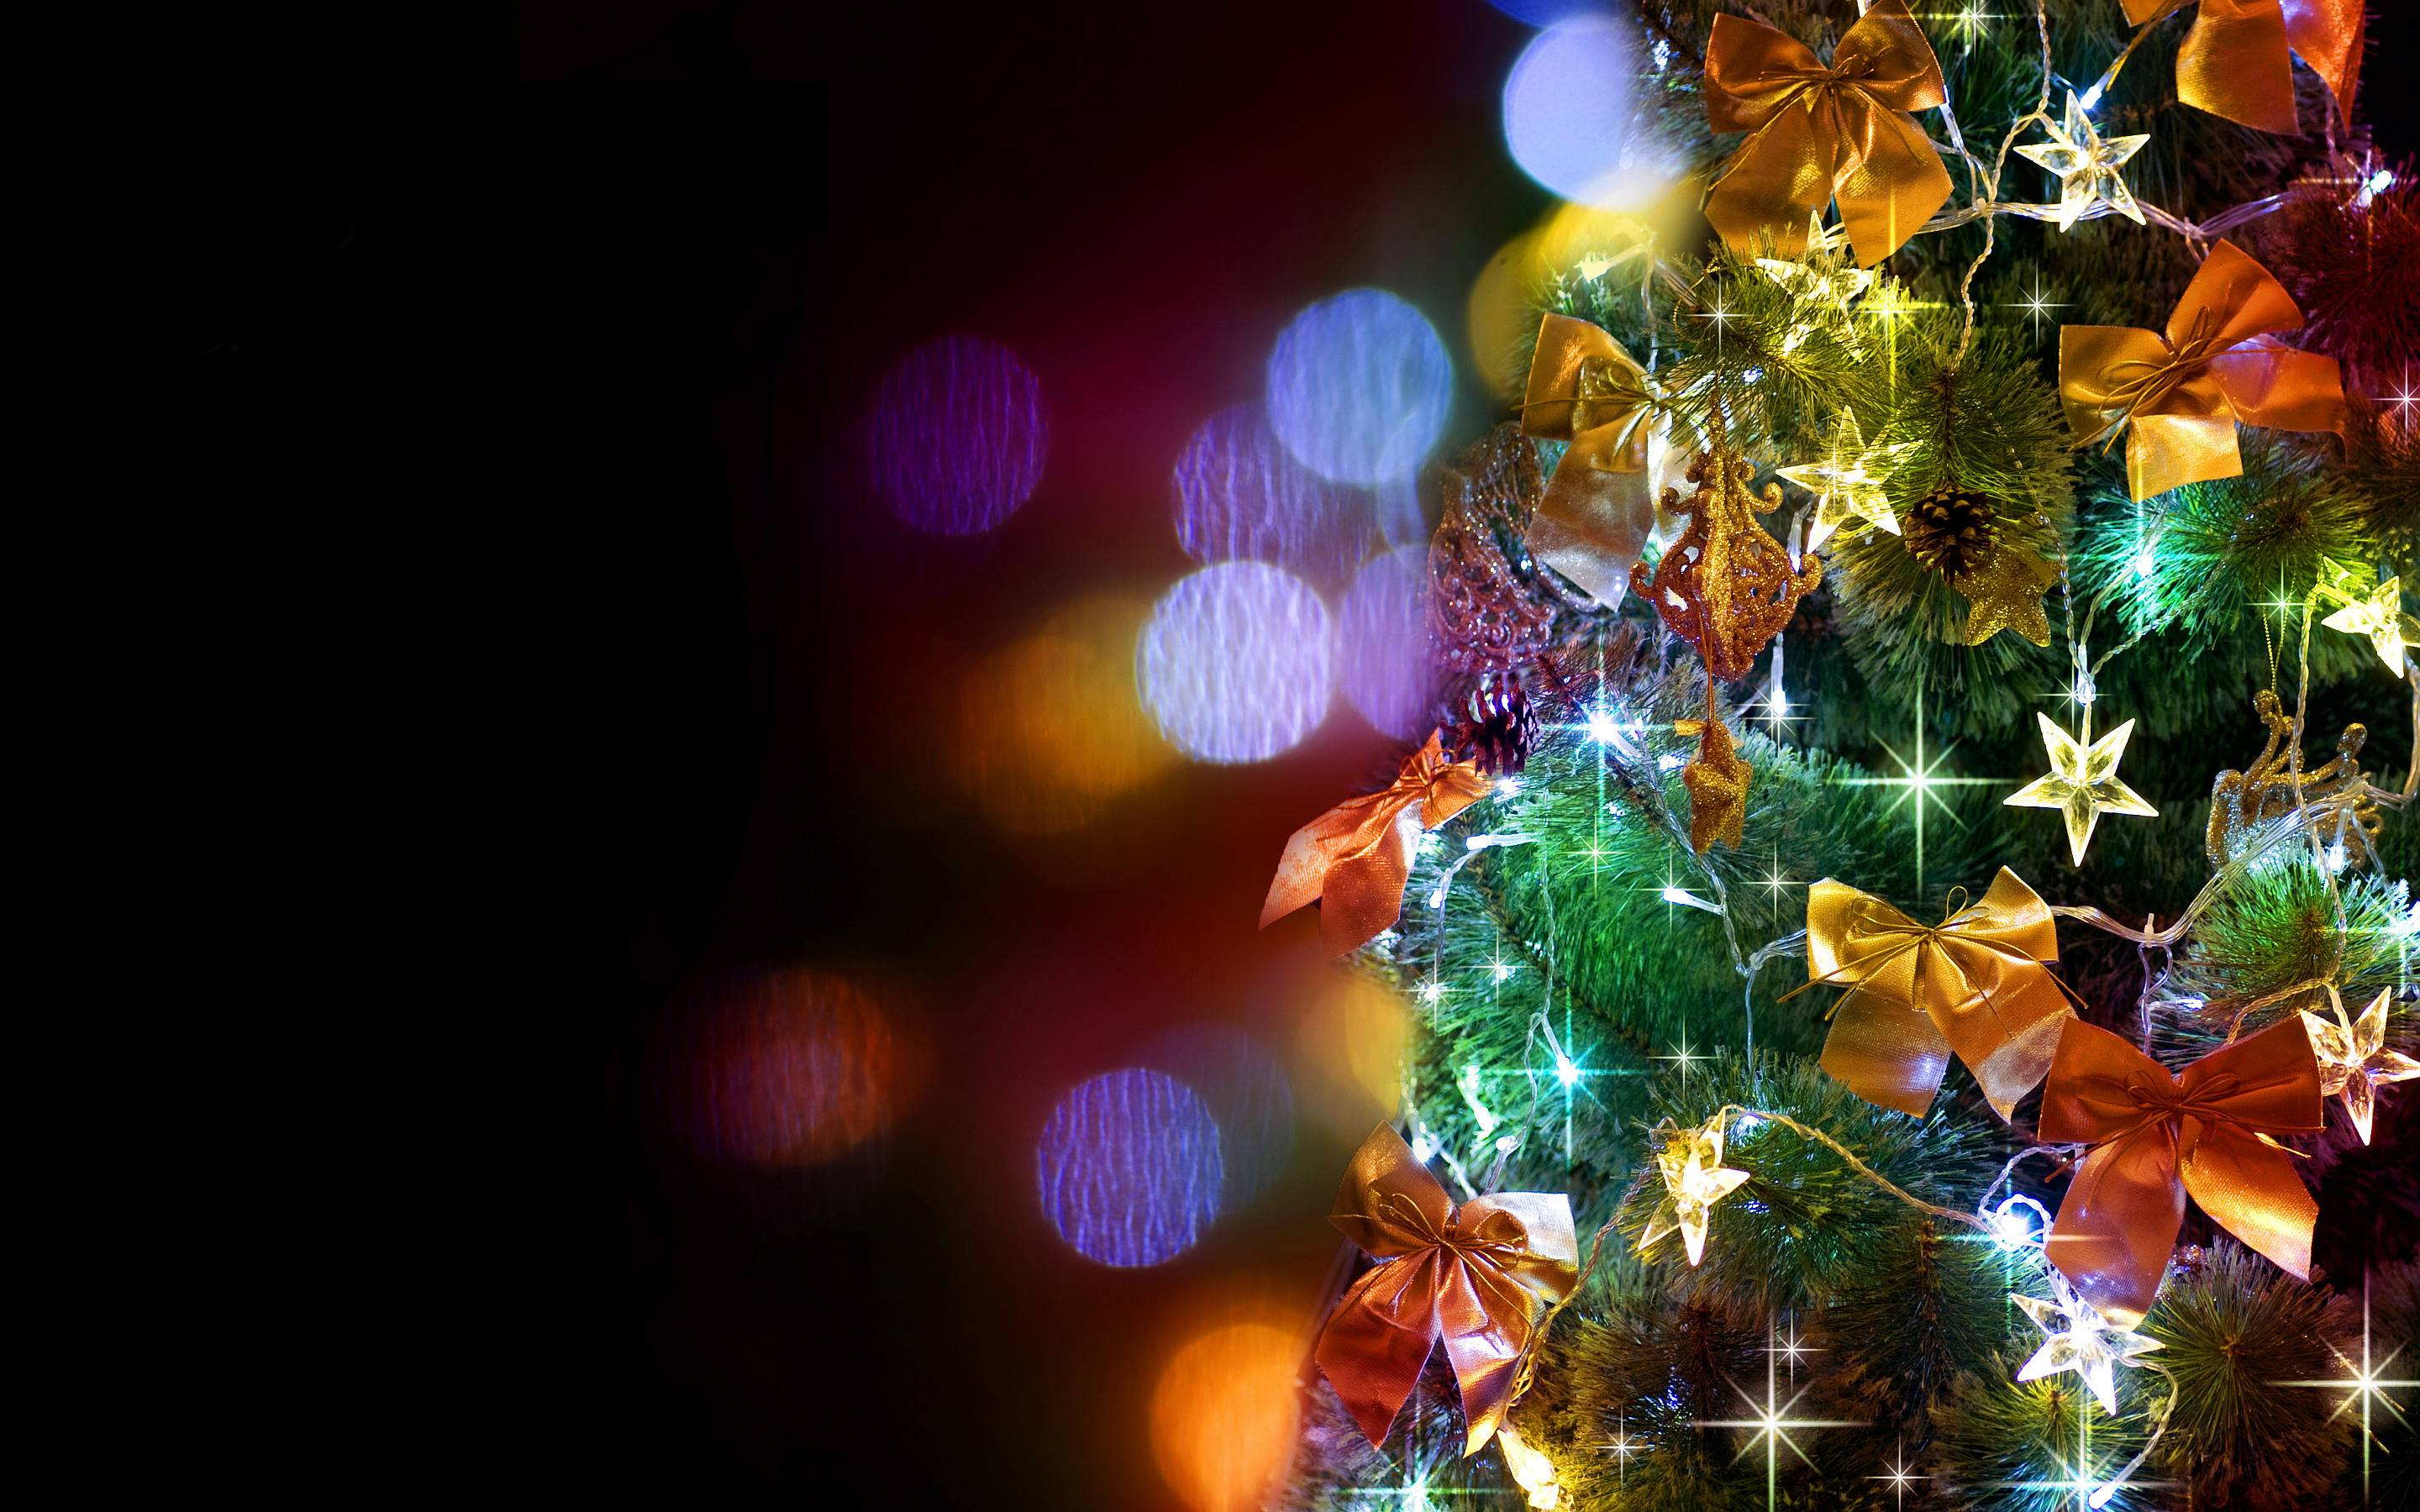 Christmas tree wallpaper backgrounds cave